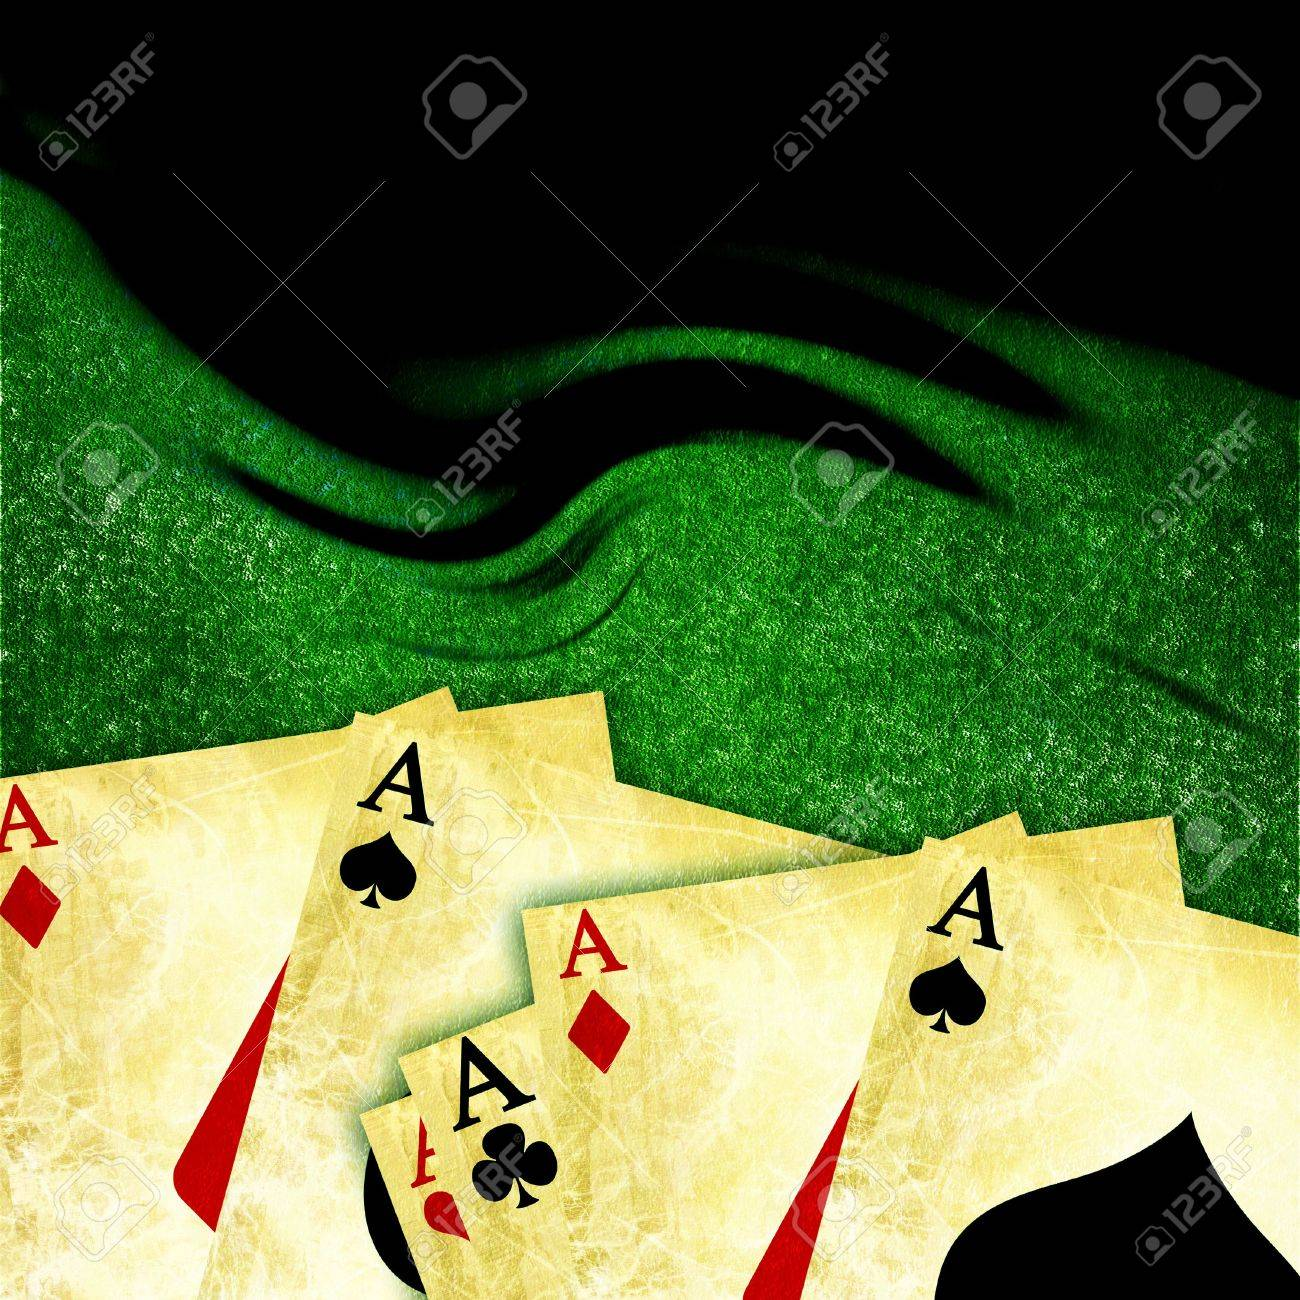 Poker table background - Stock Photo Poker Table Background With Playing Cards On It